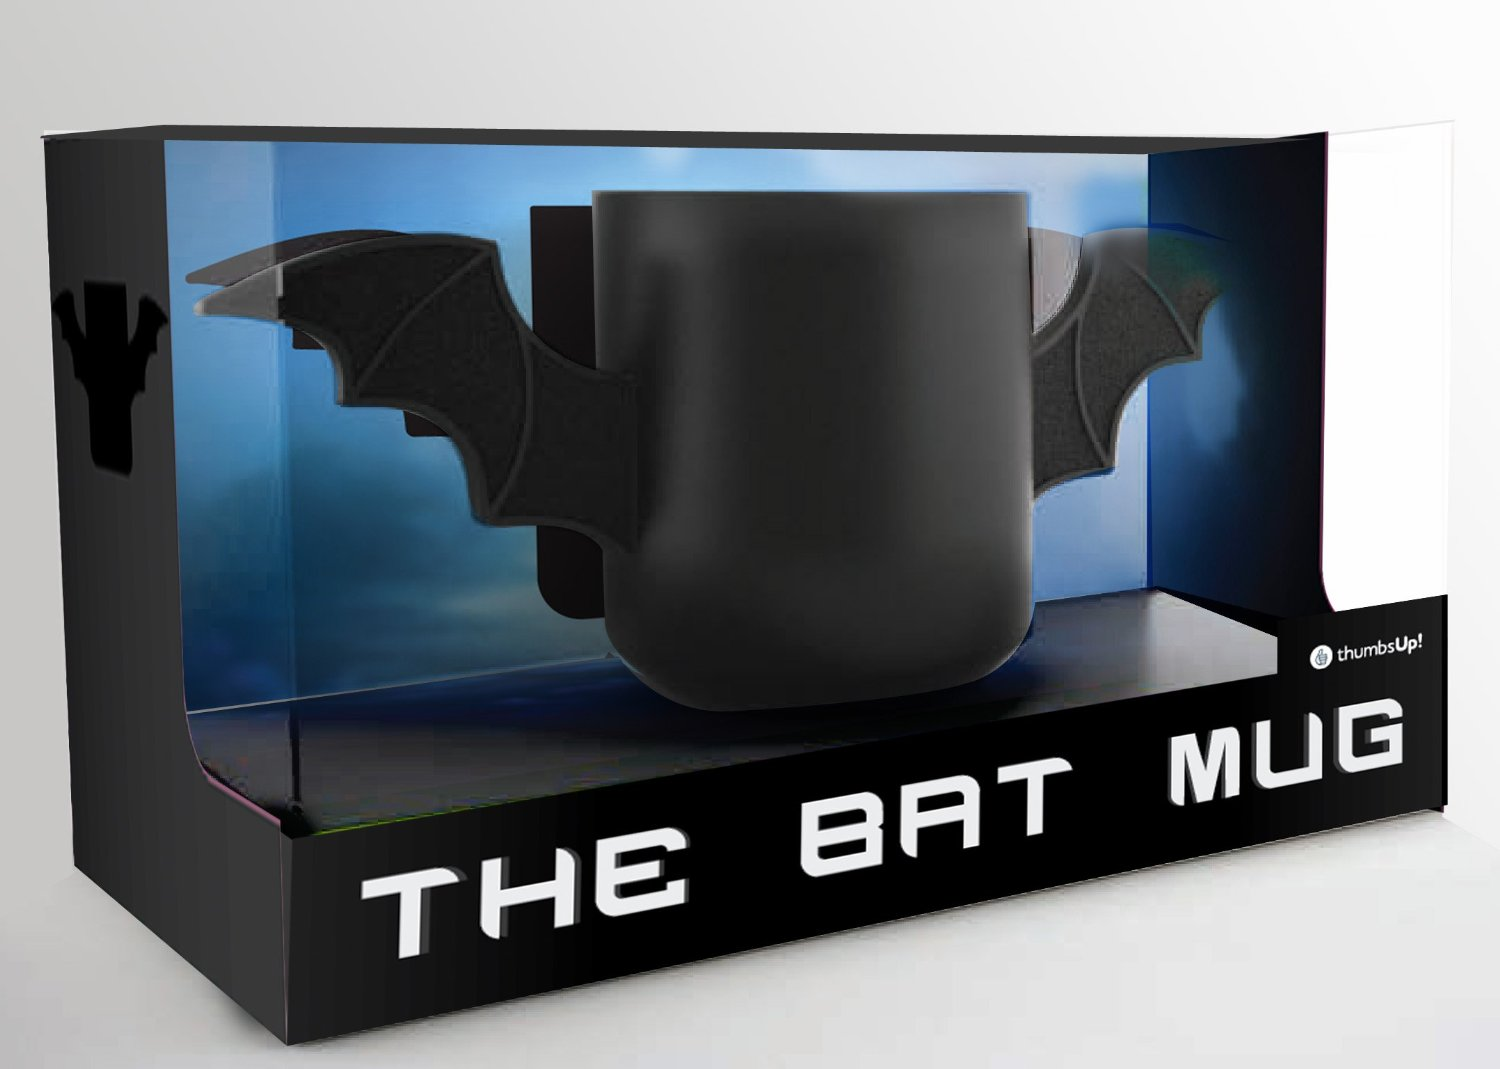 bat mug objet geek mr etrange. Black Bedroom Furniture Sets. Home Design Ideas